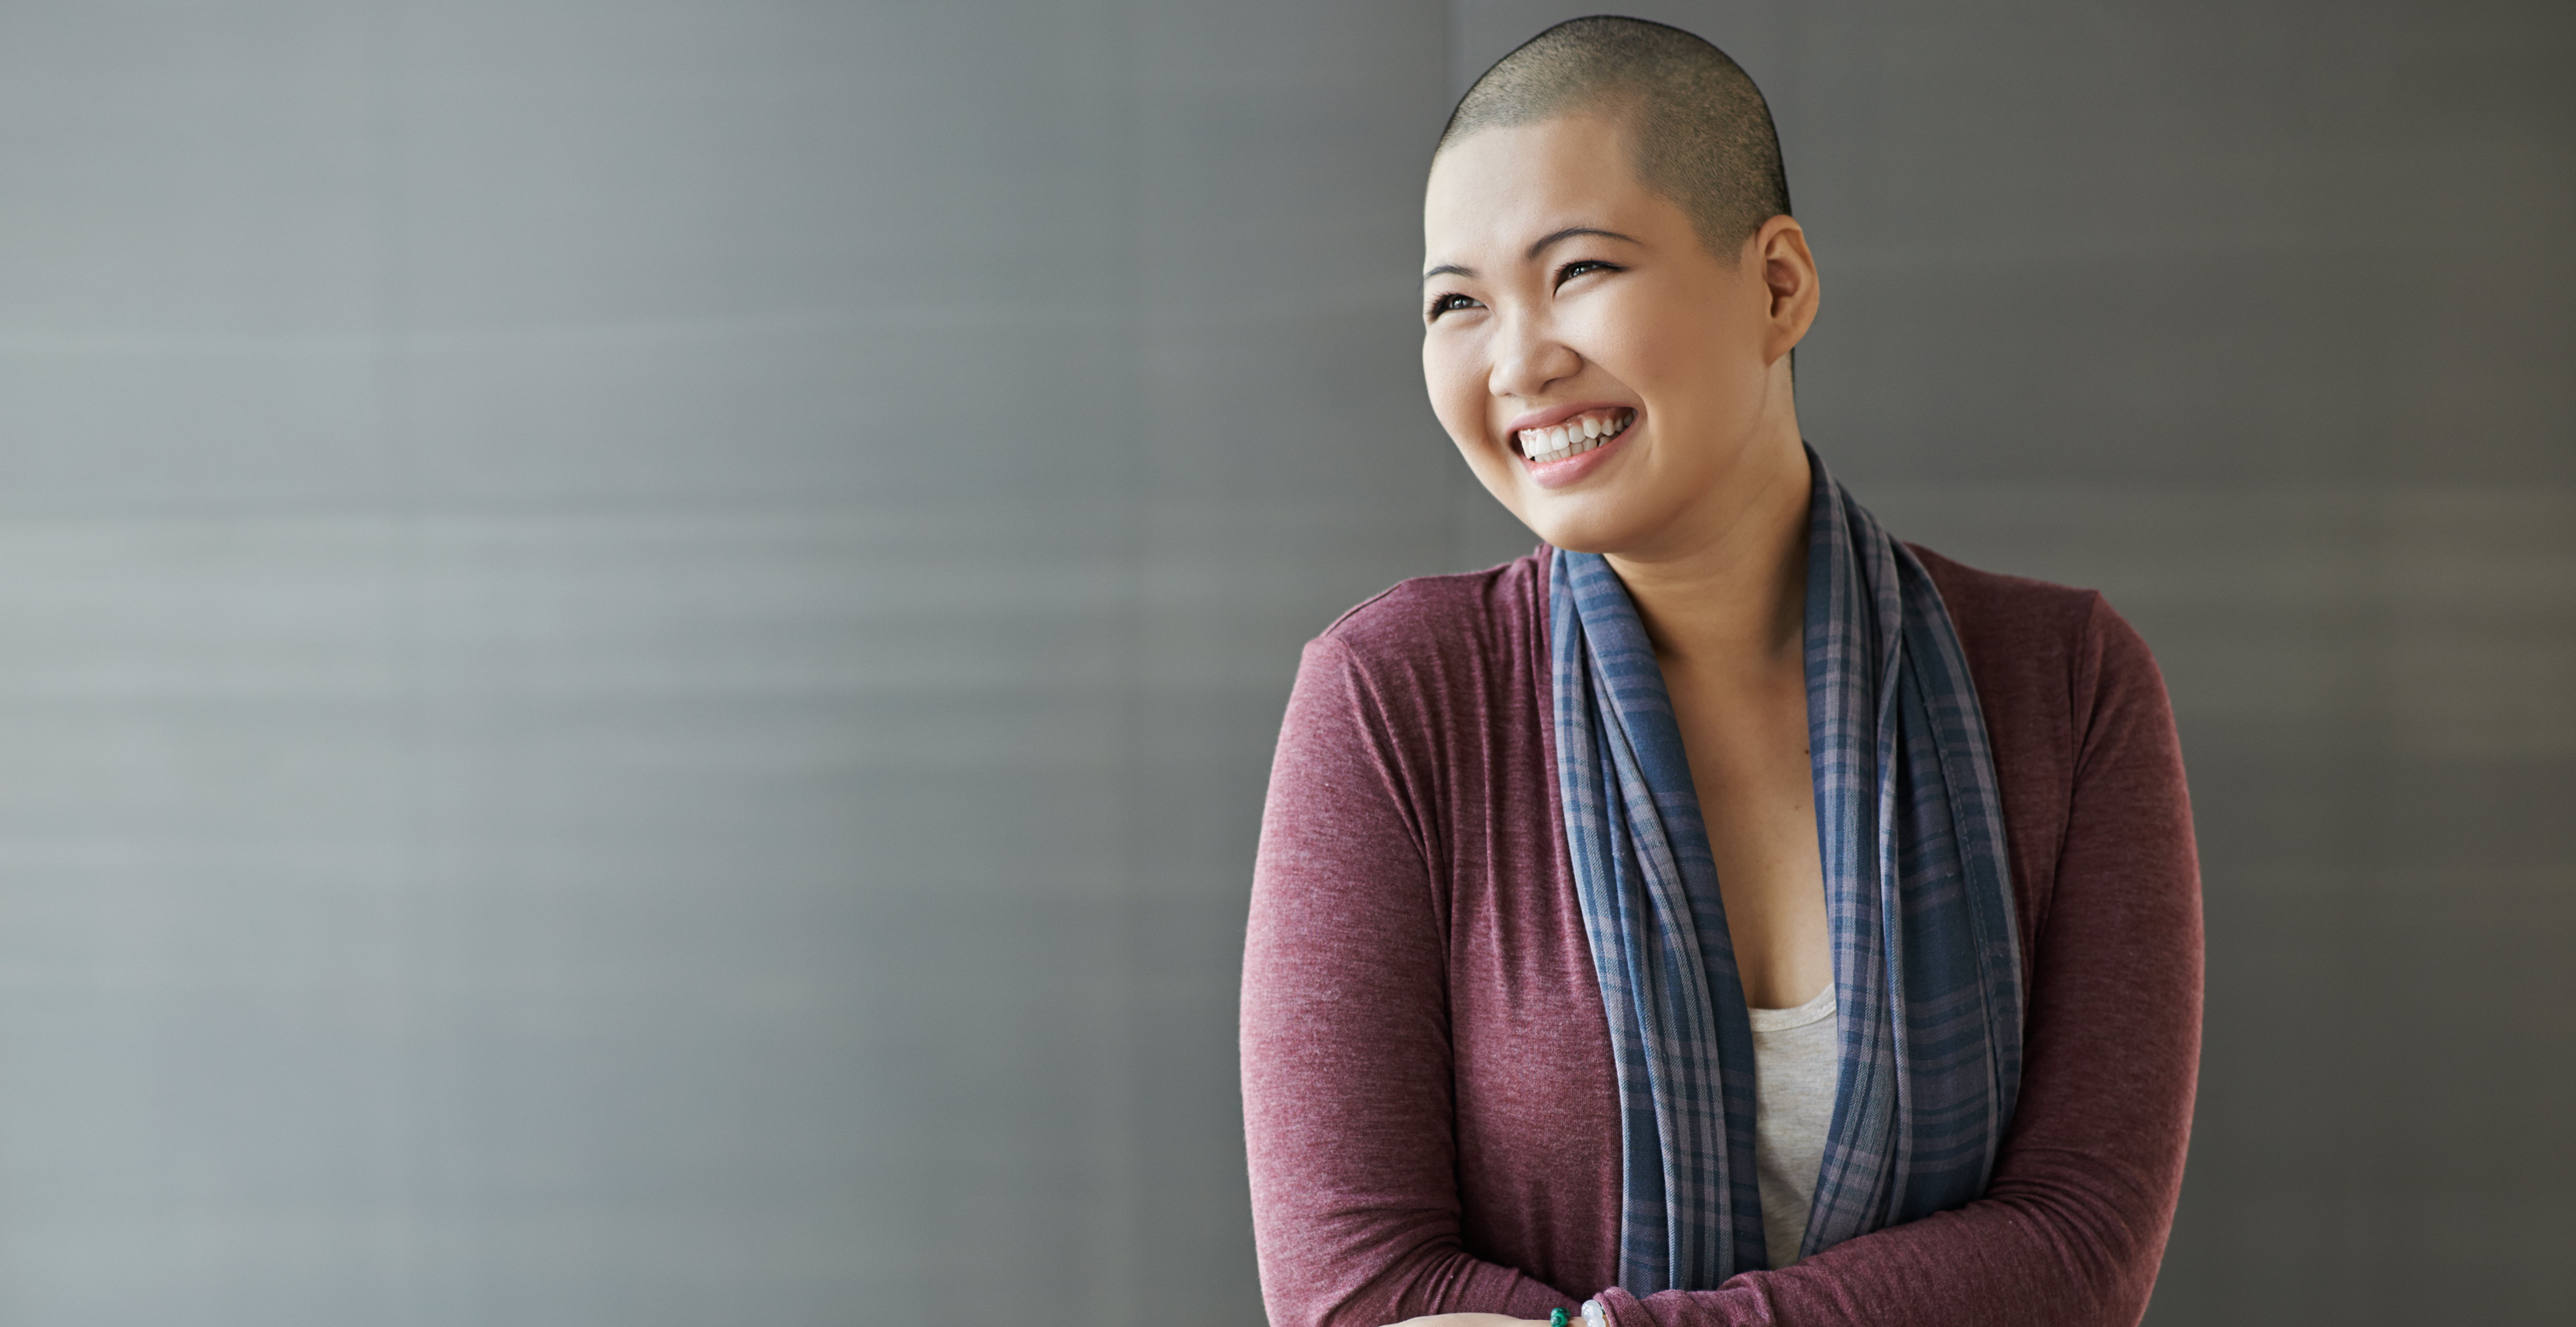 Taking a stand for women with breast cancer and all patients with chronic diseases